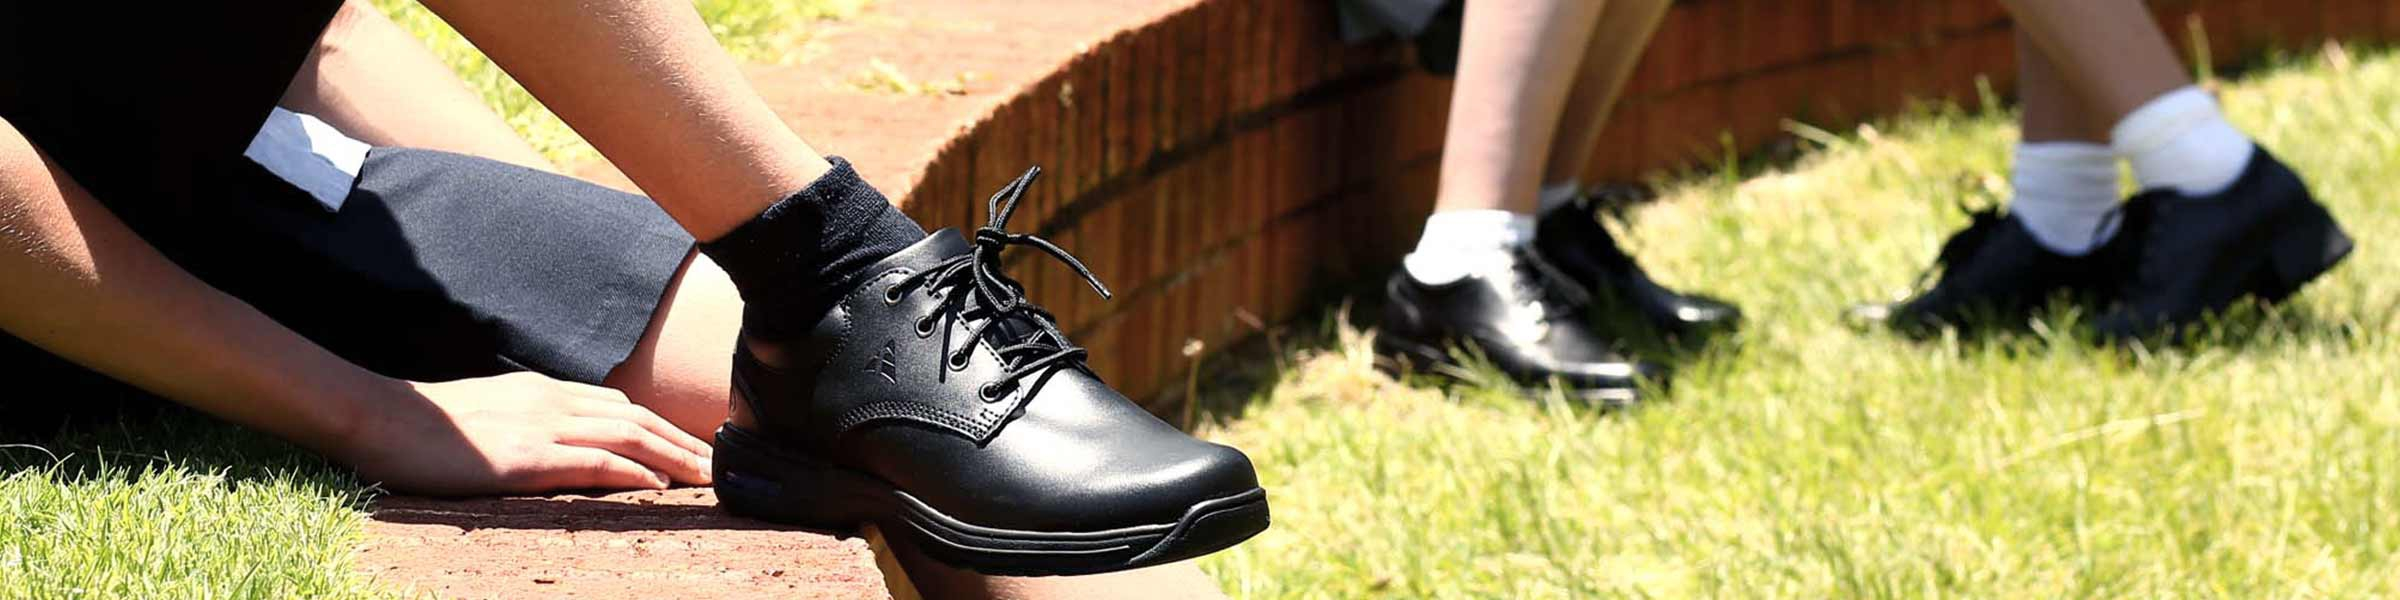 Airflex School Shoes